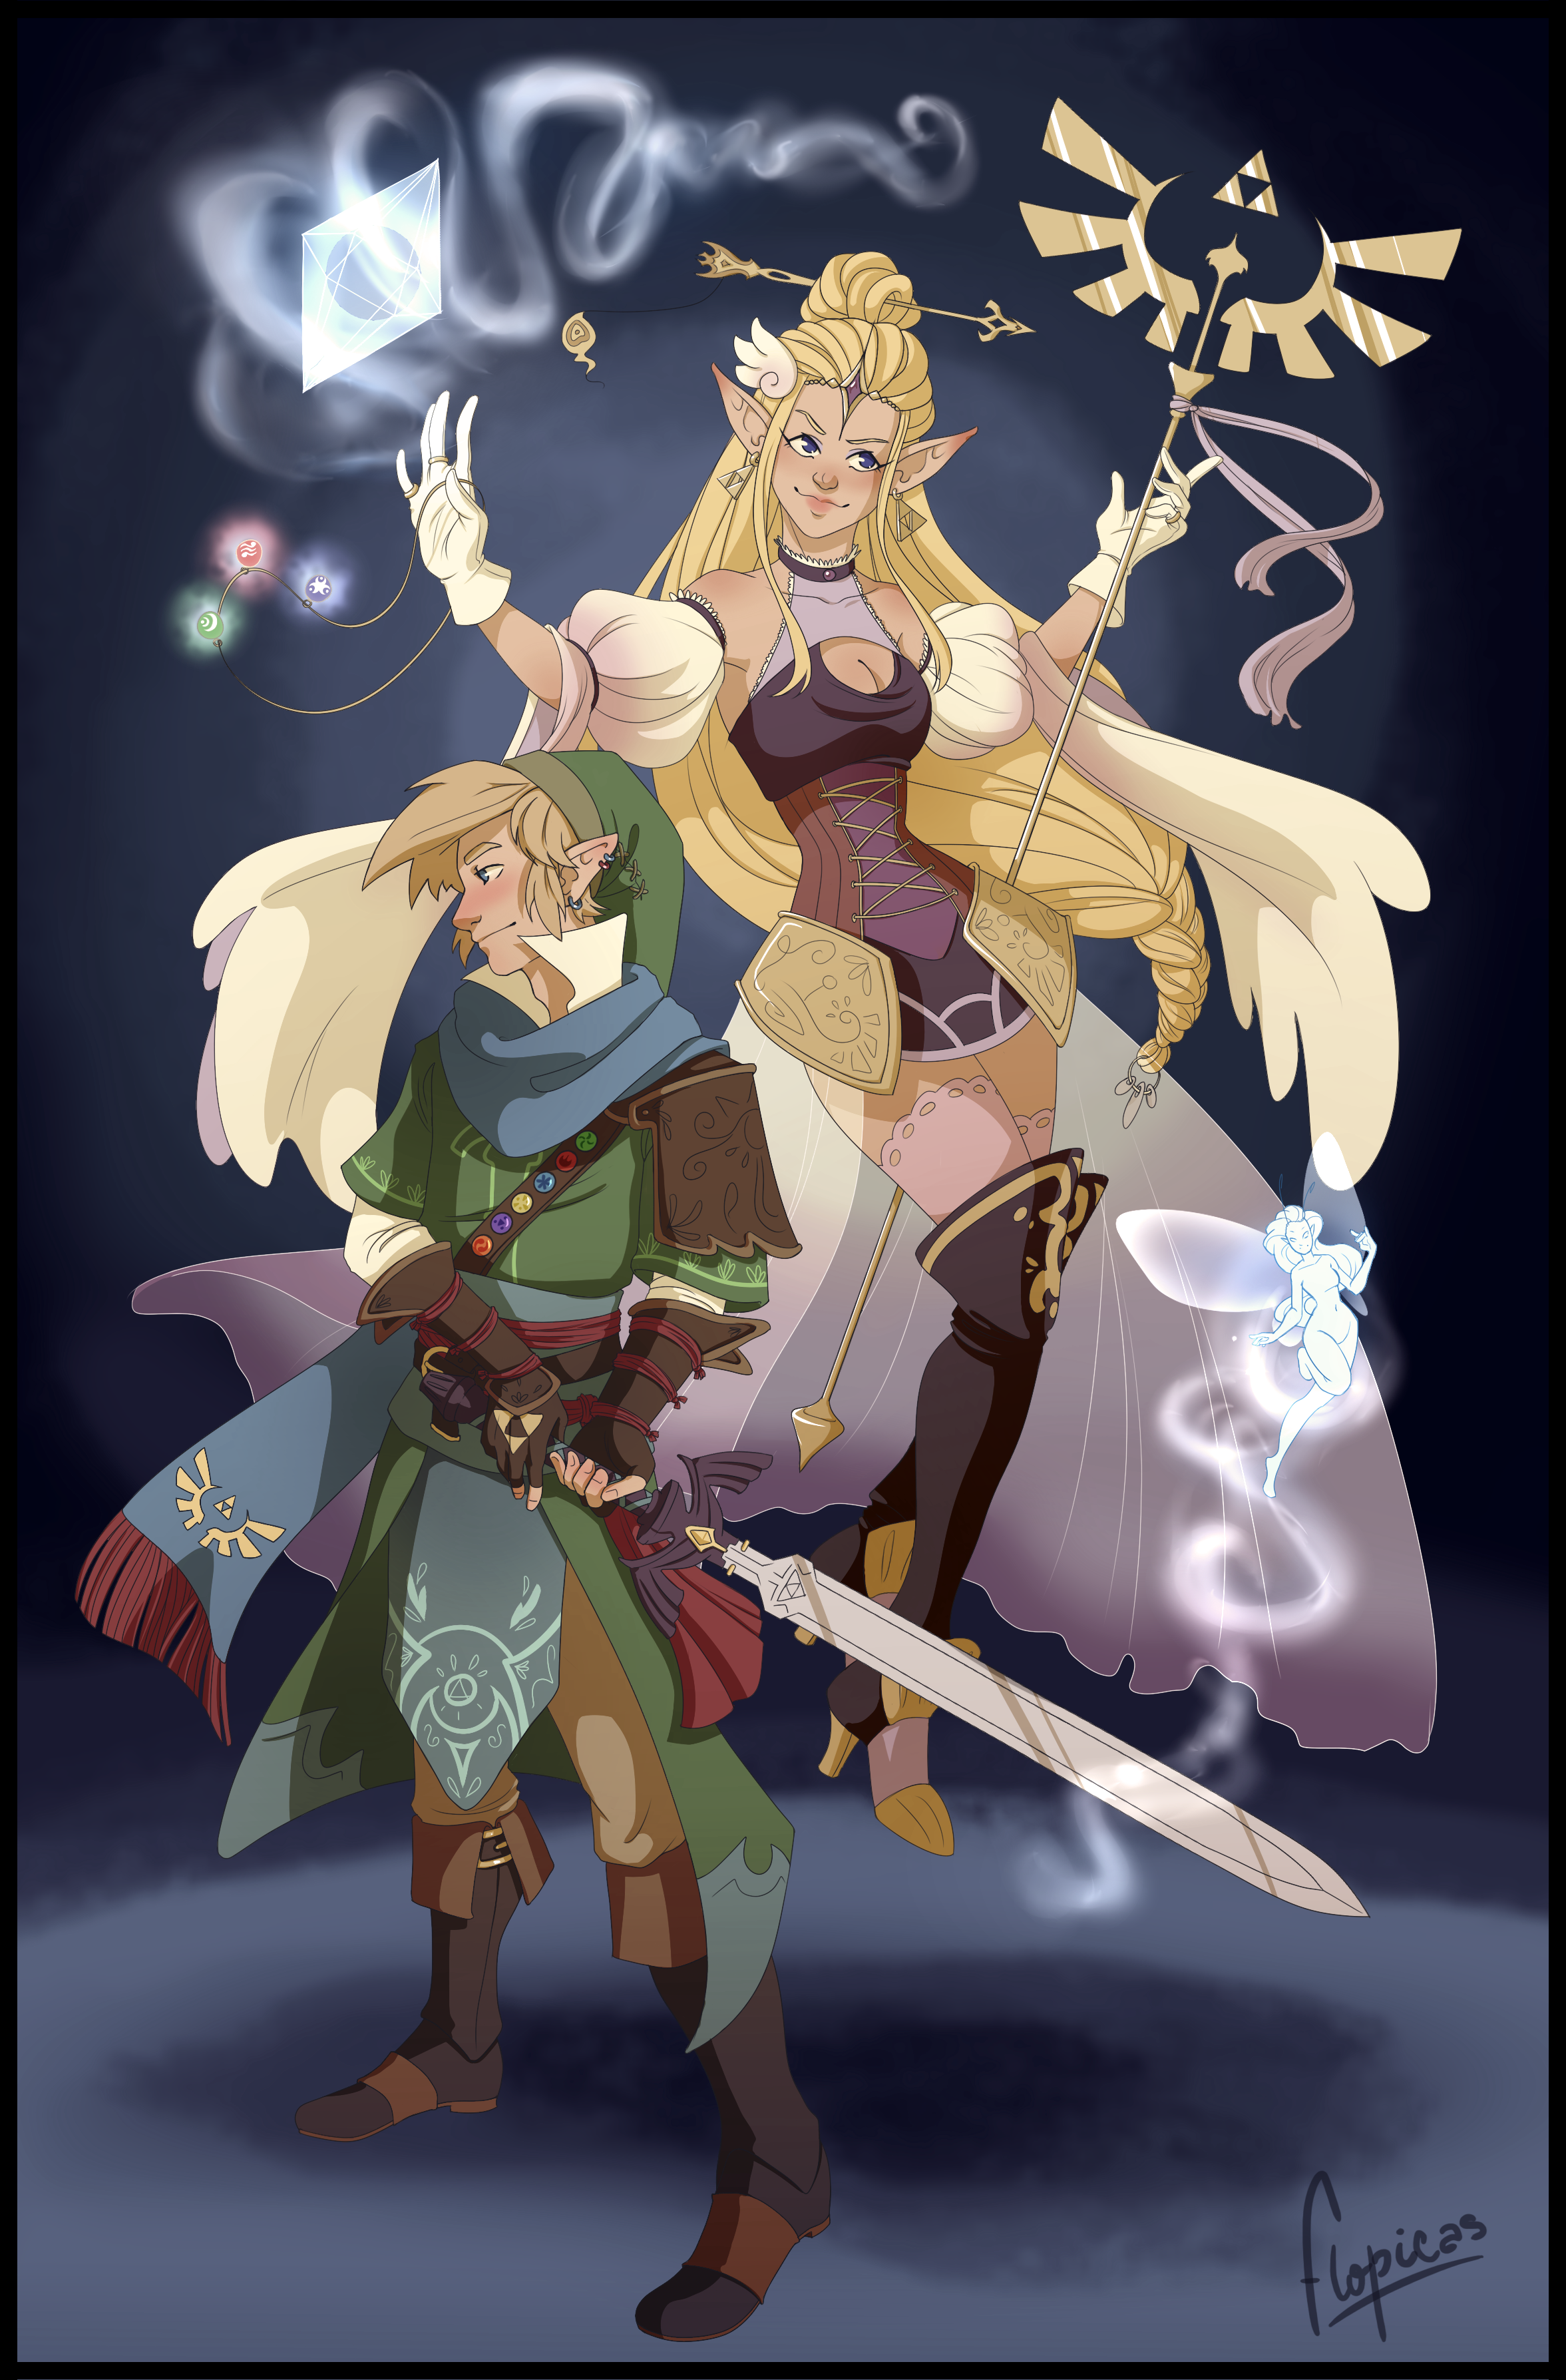 The goddess and her knight